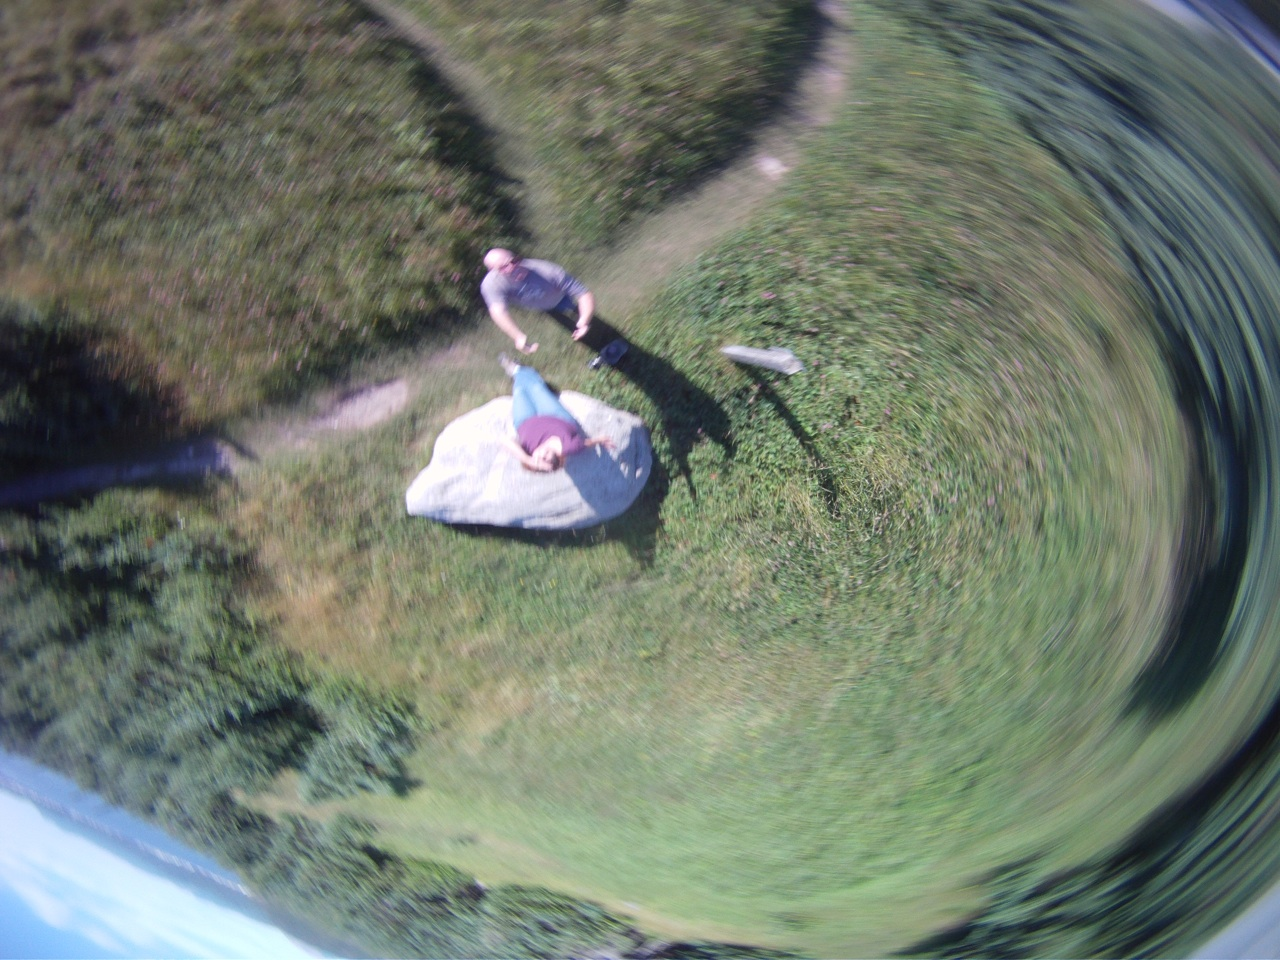 This Was David Tossing The GoPro Camera Into The Air